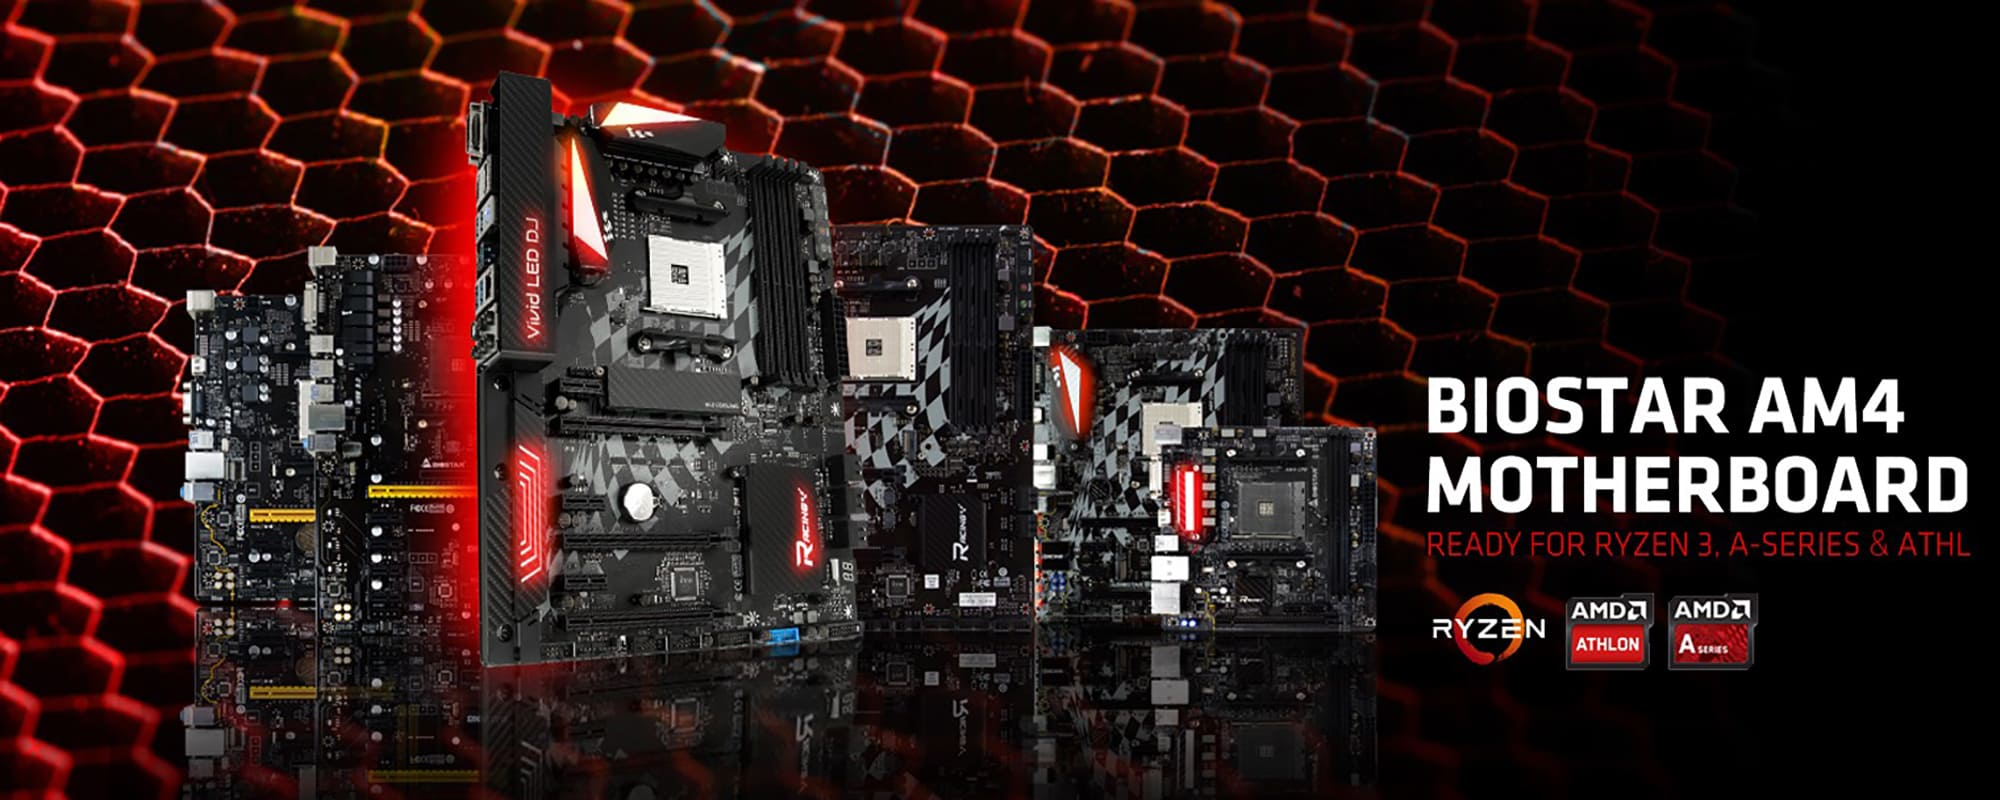 BIOSTAR RACING and PRO Series motherboards